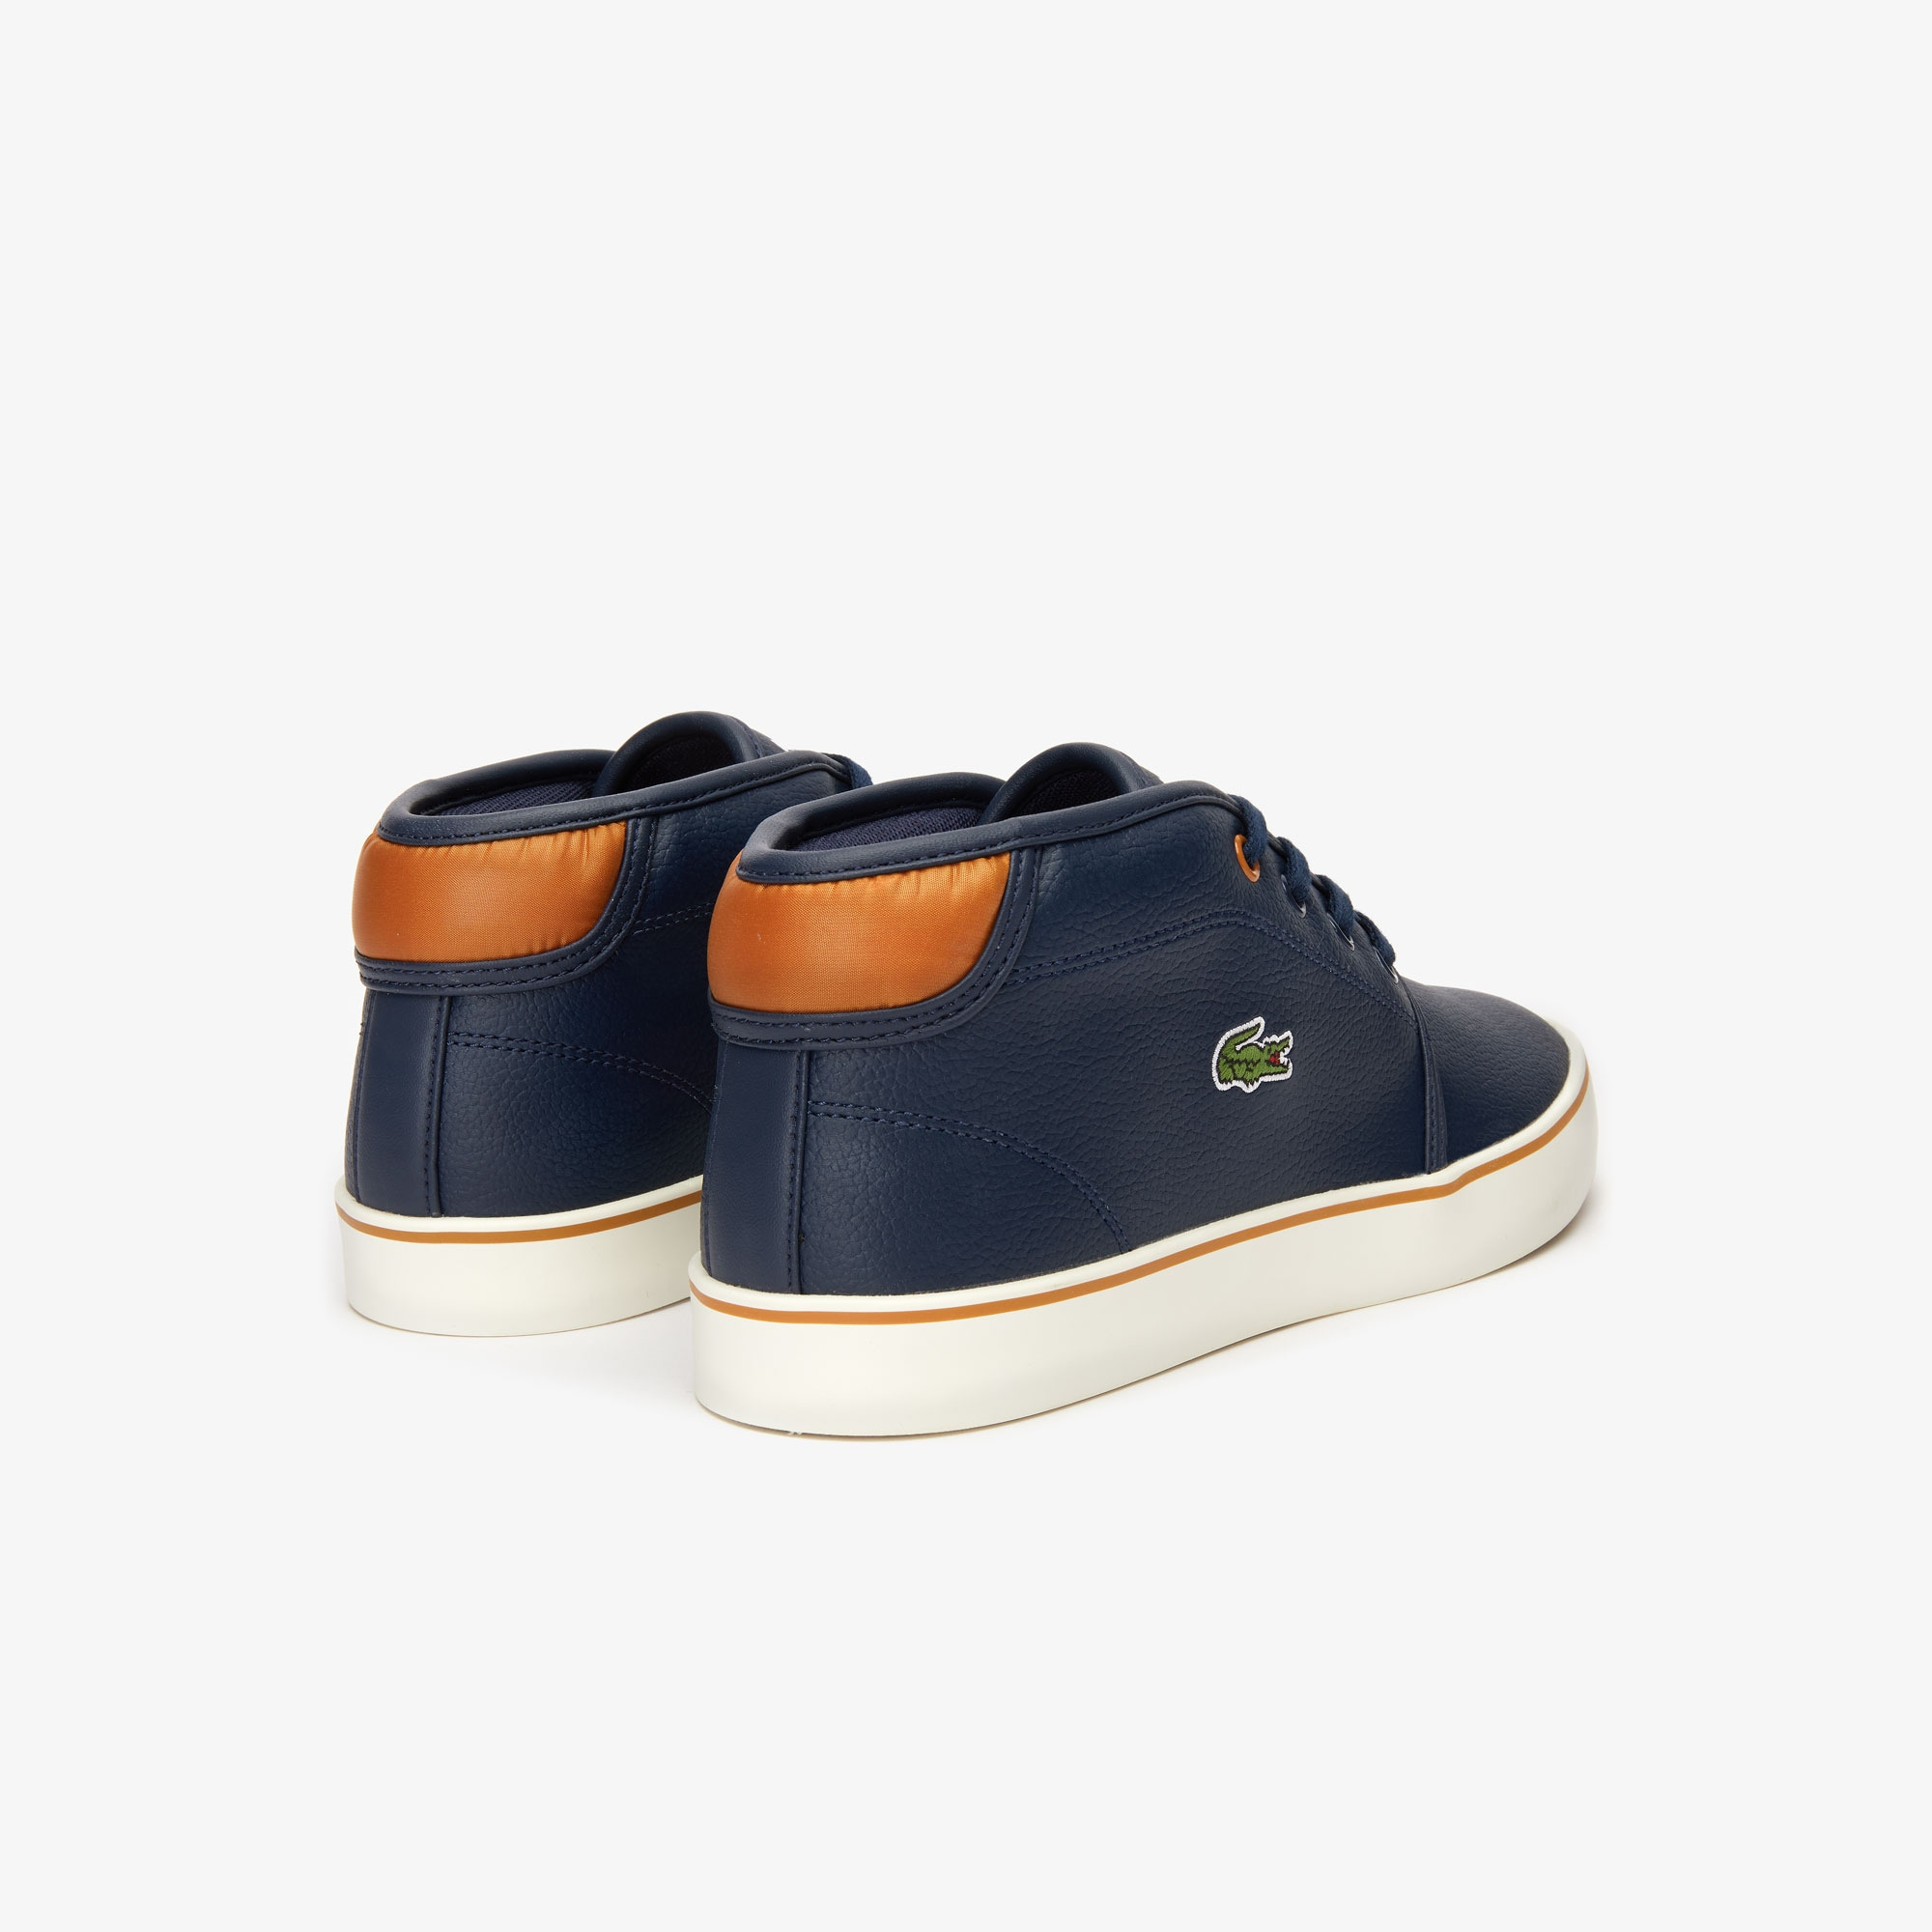 Lacoste Juniors Ampthill Trainers Hightop Boots White Navy Boys